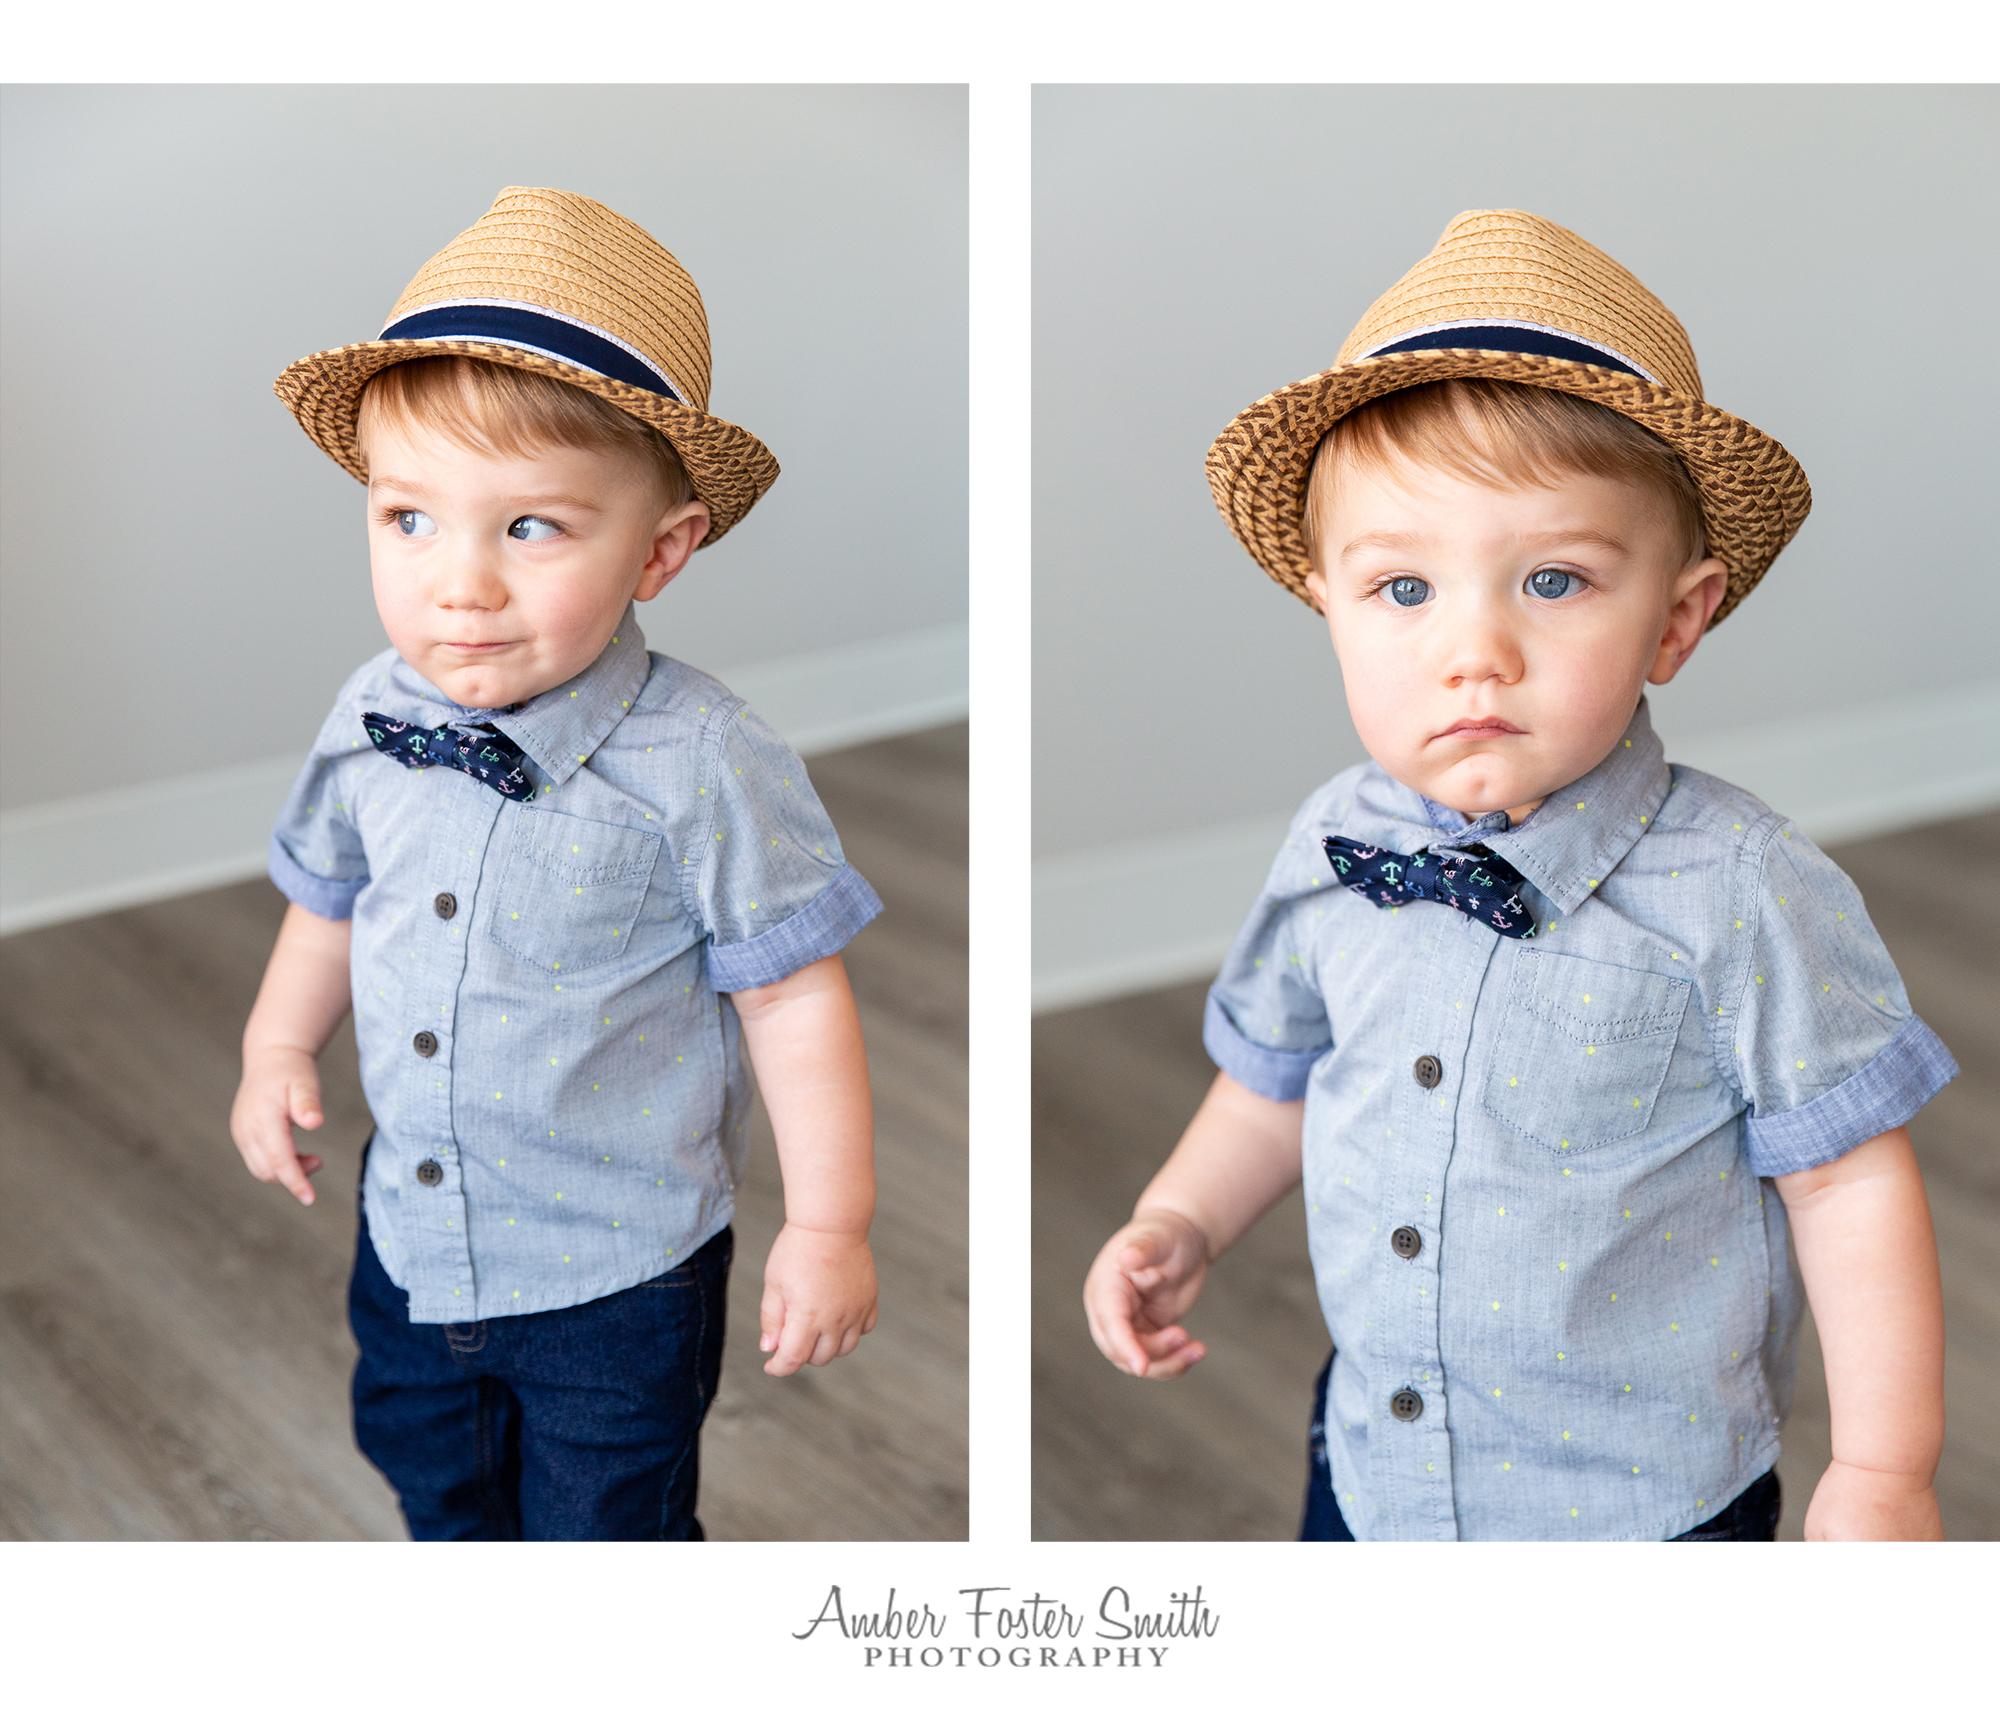 one year old boy in hat standing